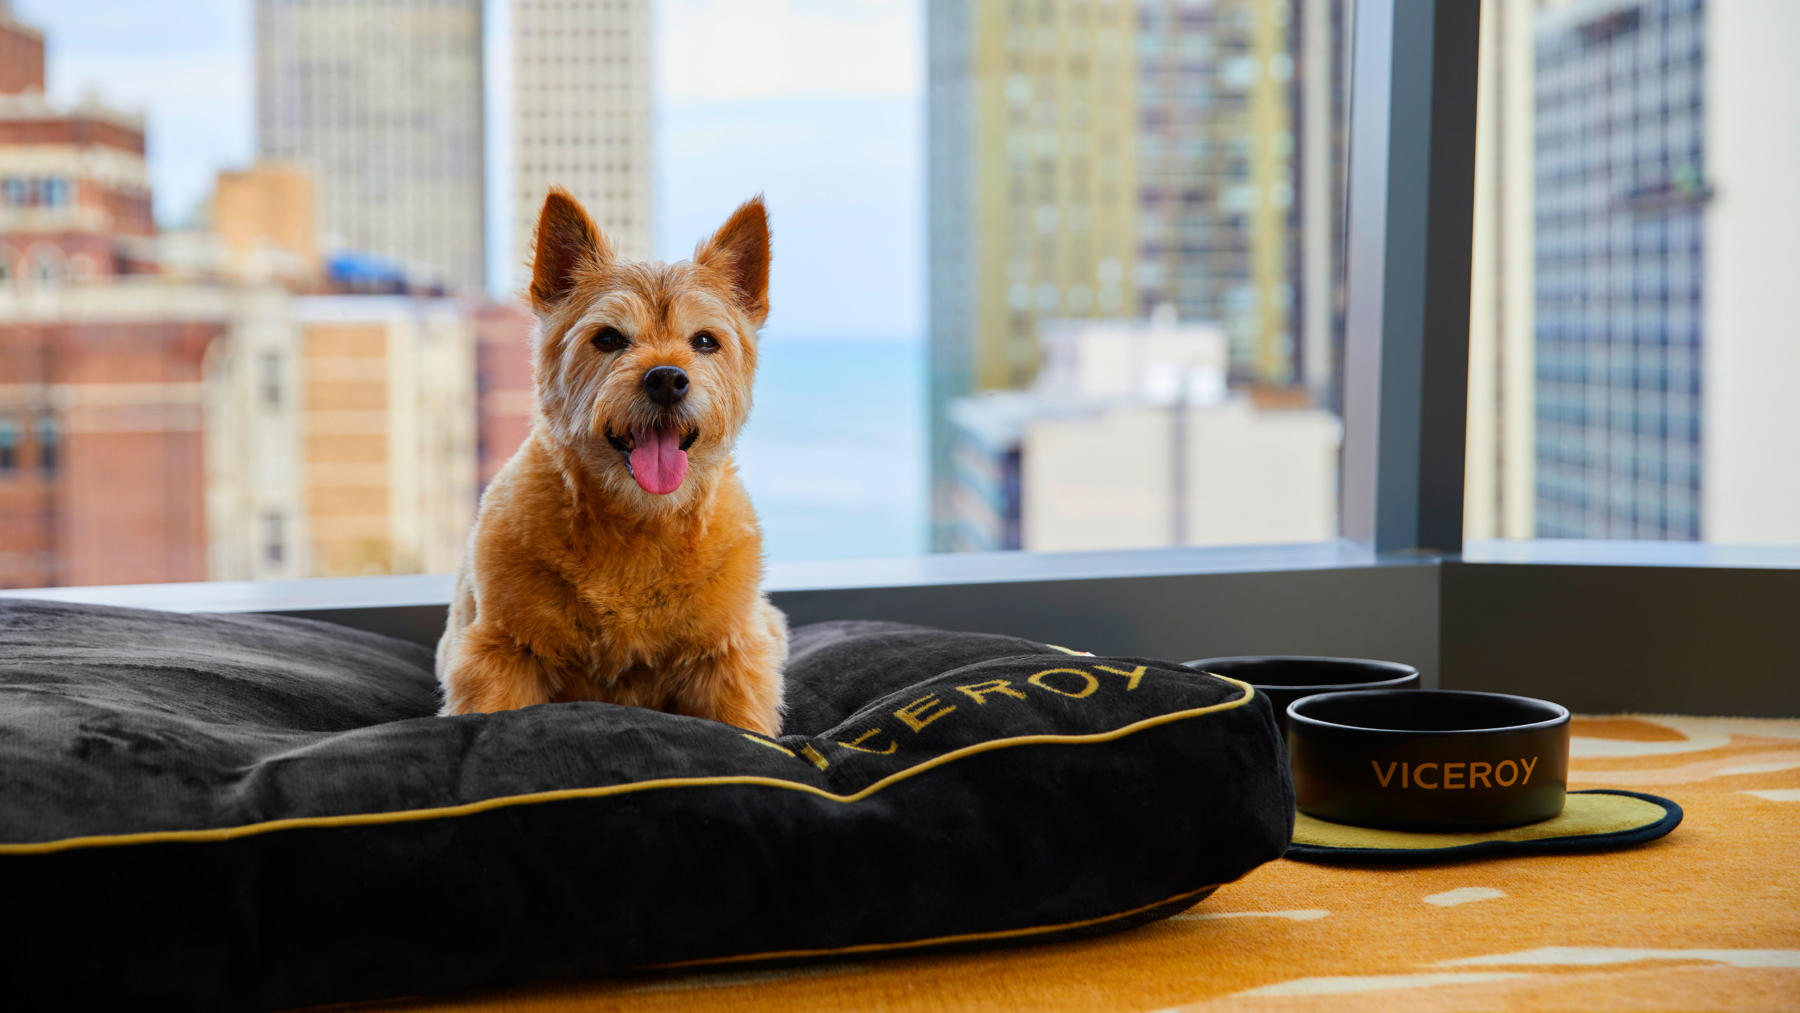 Chicago's dog-friendly hotels, restaurants, and more